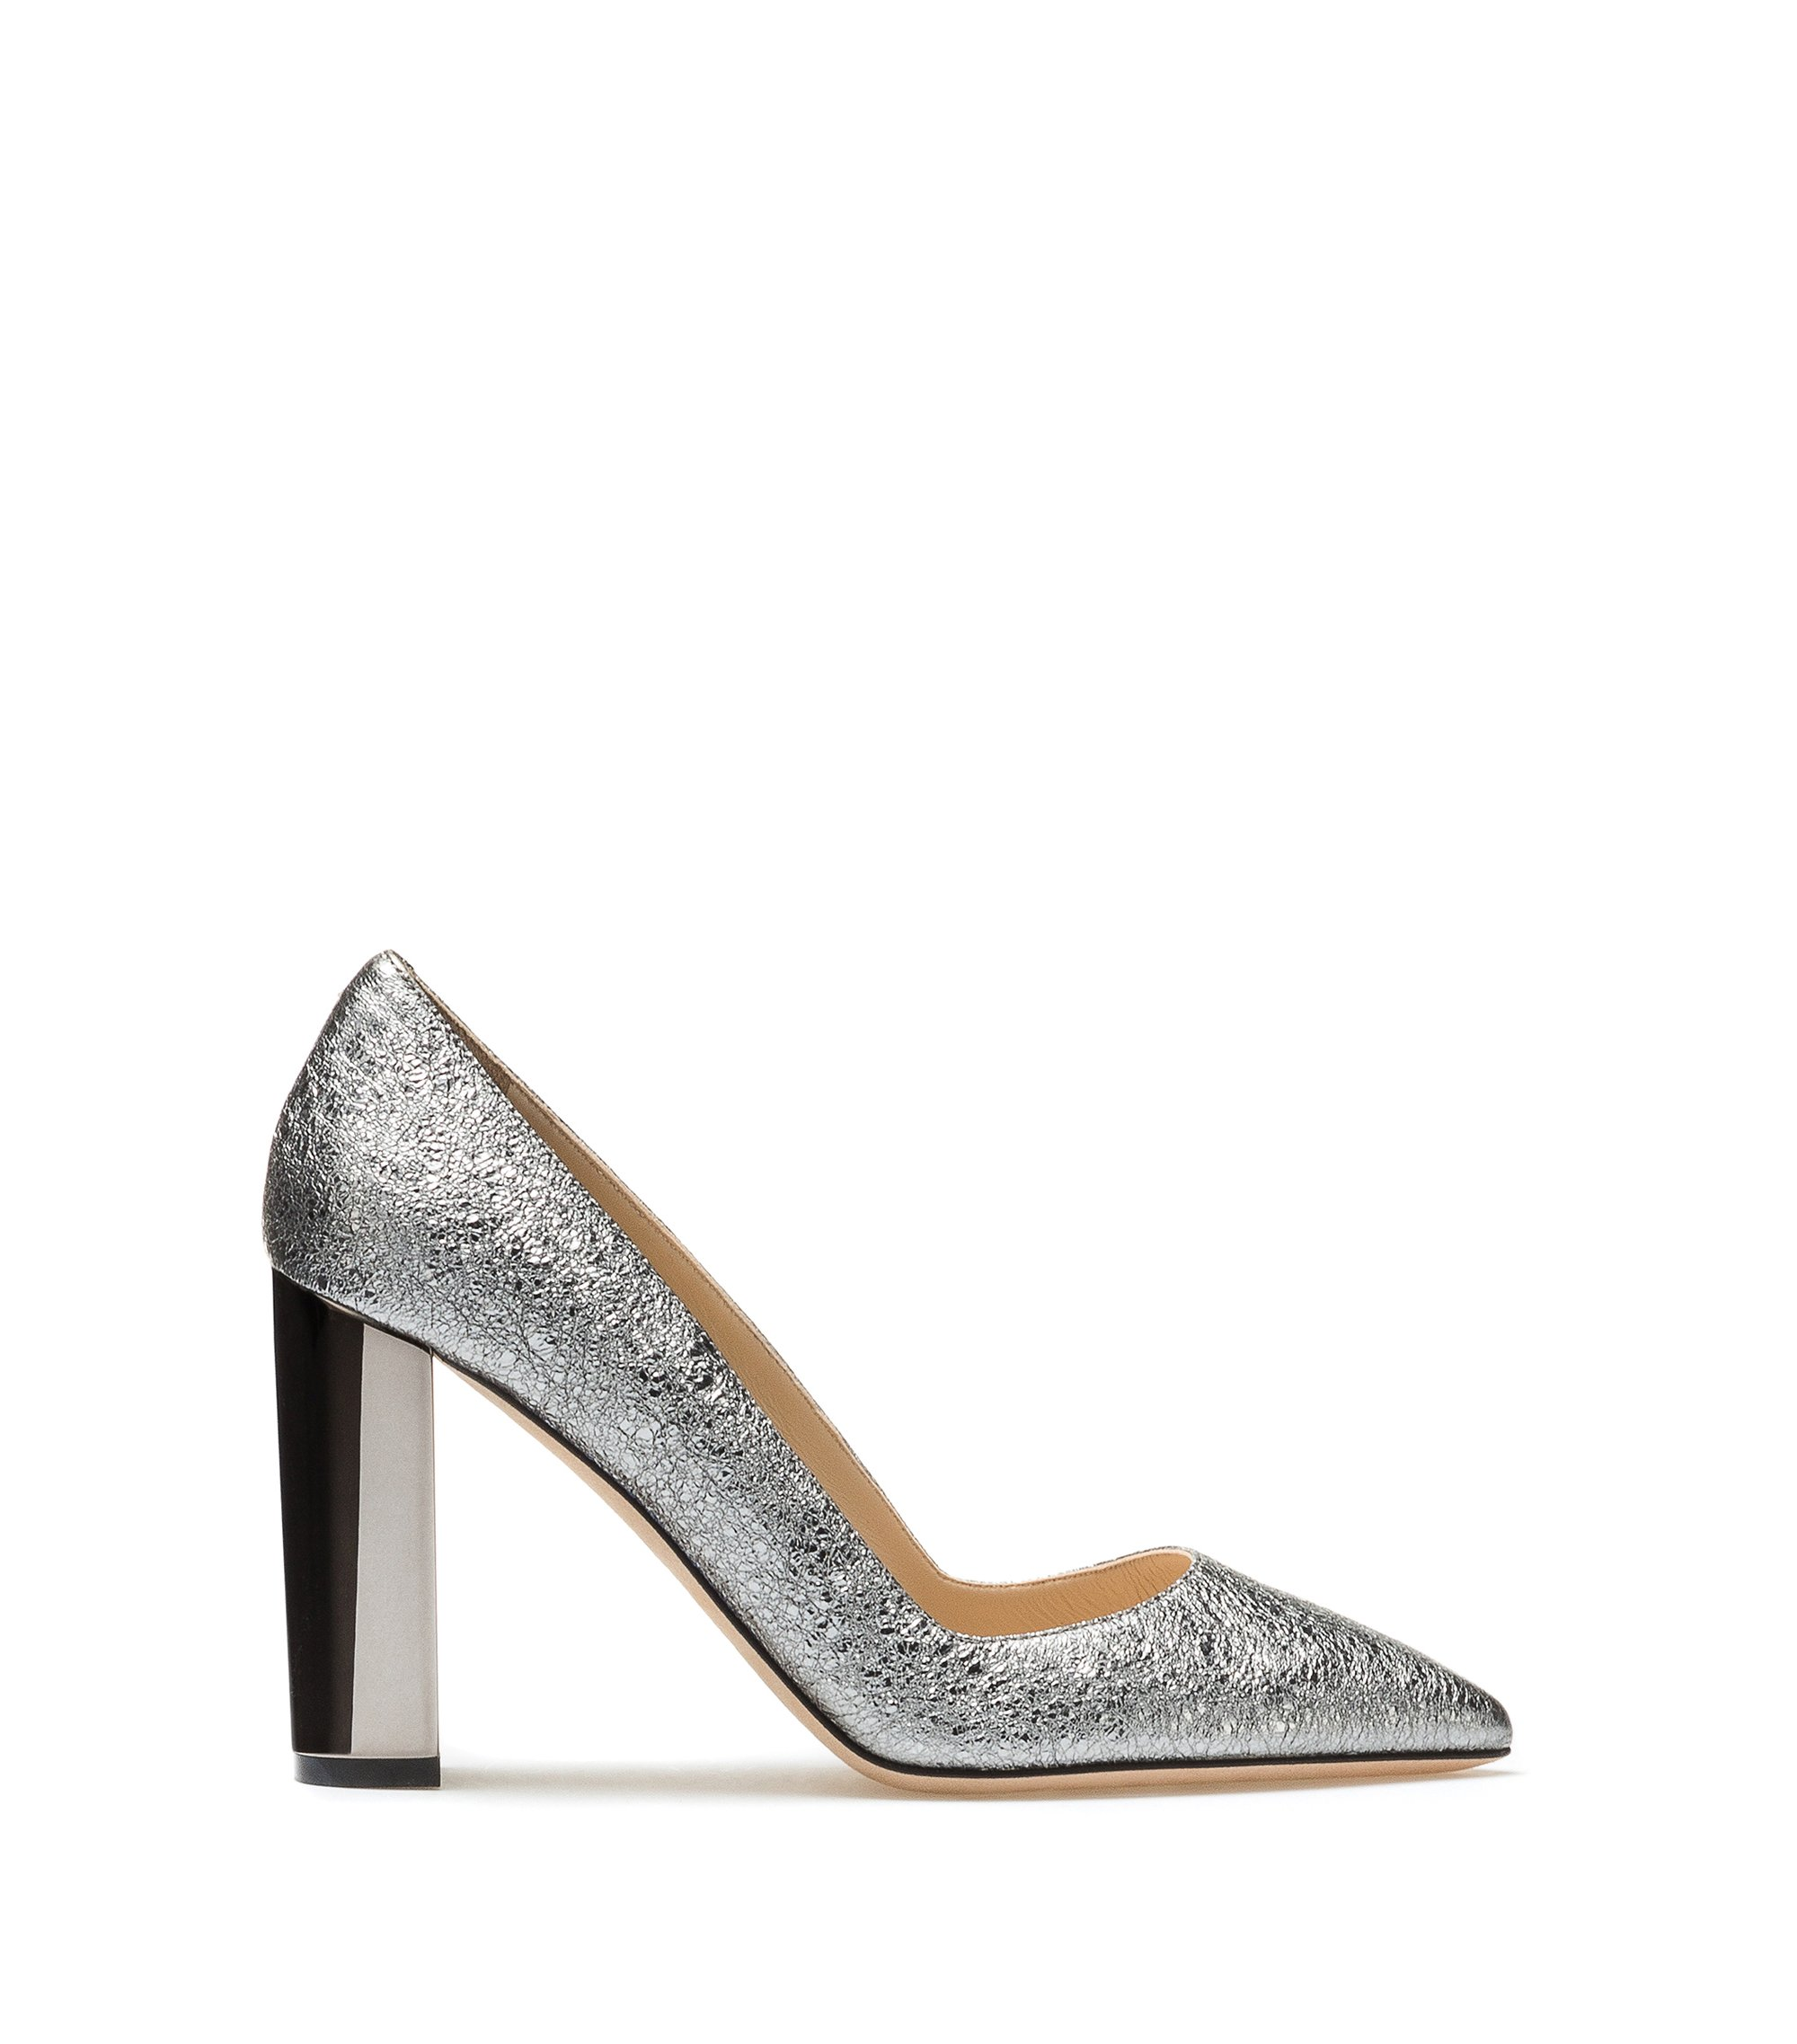 Metallic Pump | Mayfair Pump L, Patterned